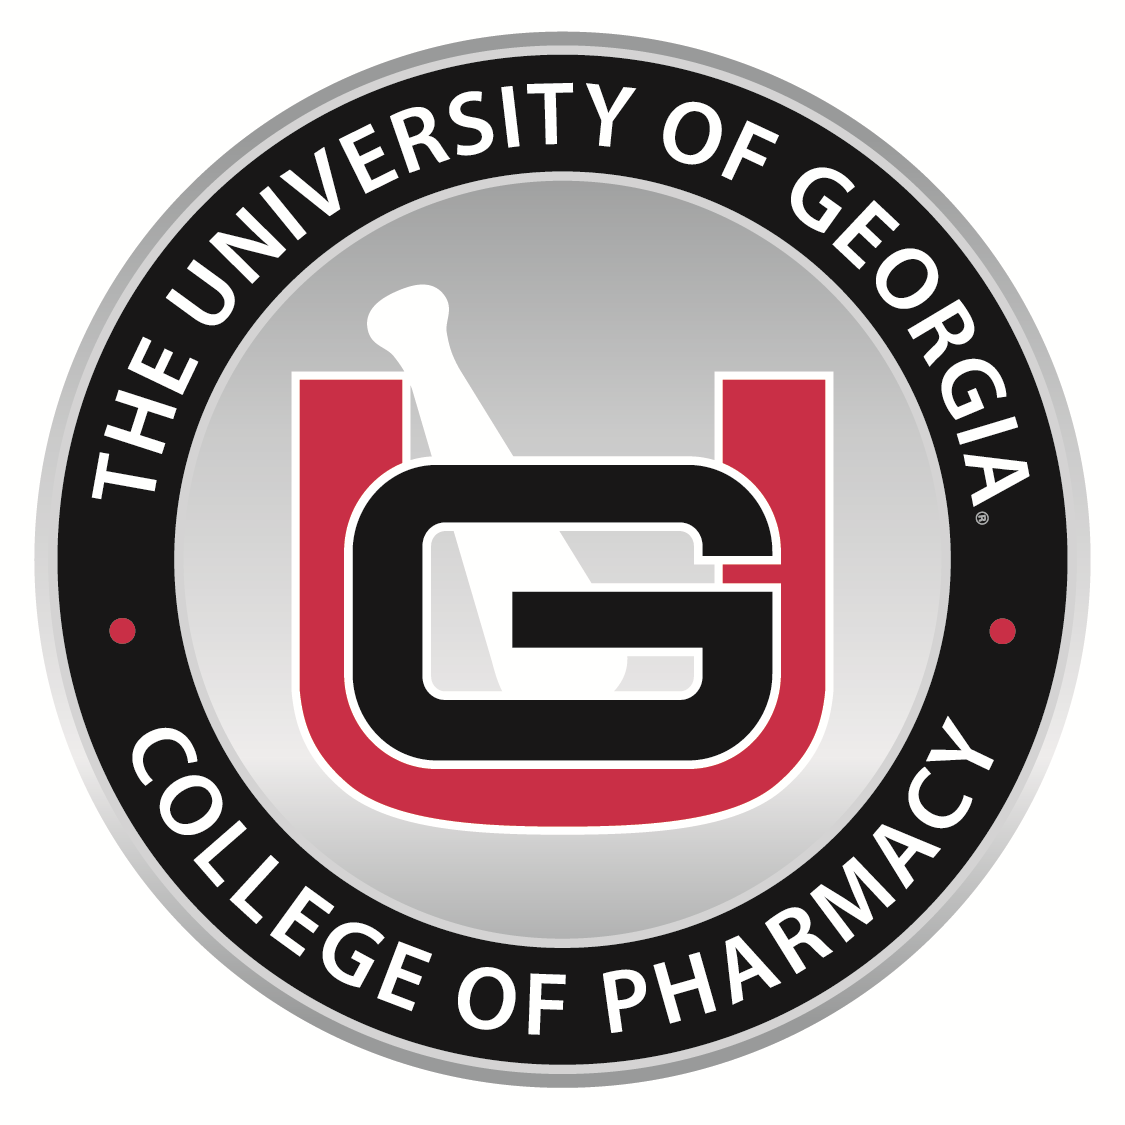 The University of Georgia, College of Pharmacy